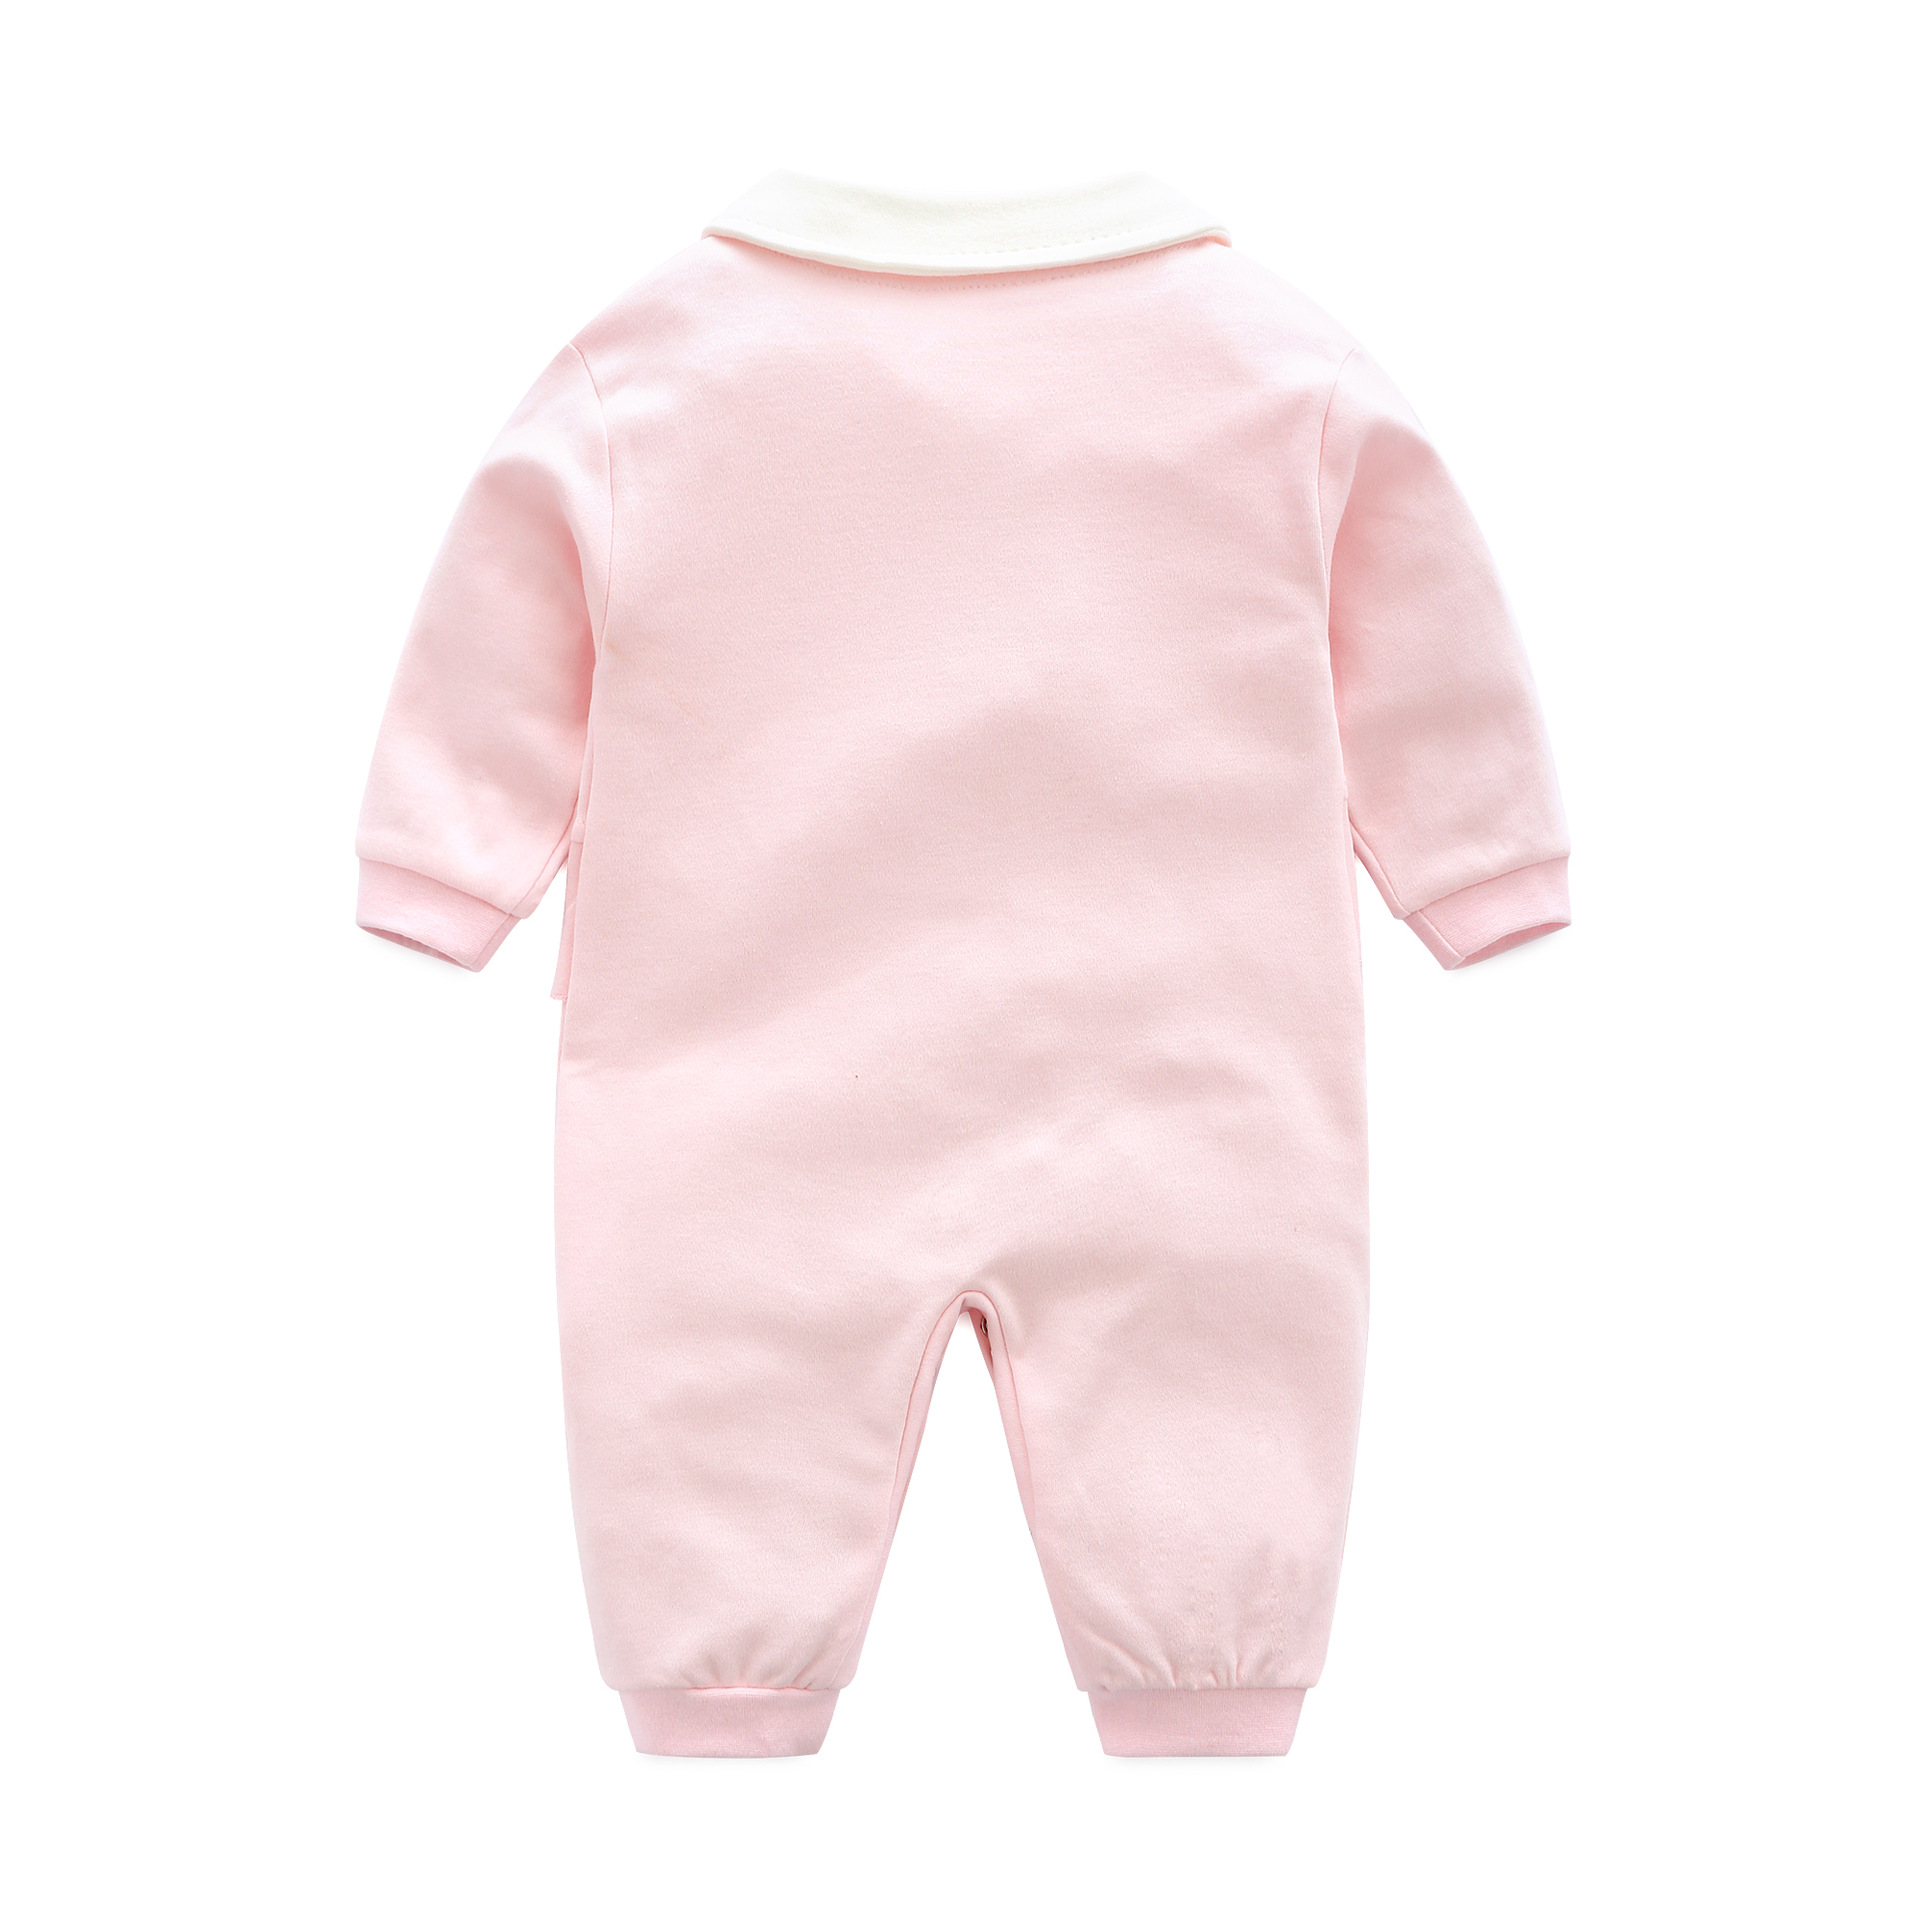 Newborn Unisex Jumpsuits Gentleman Autumn Long Sleeves Rompers Cotton Baby Clothes For Boys Girls Outfits Infantil Costume Wear | Happy Baby Mama